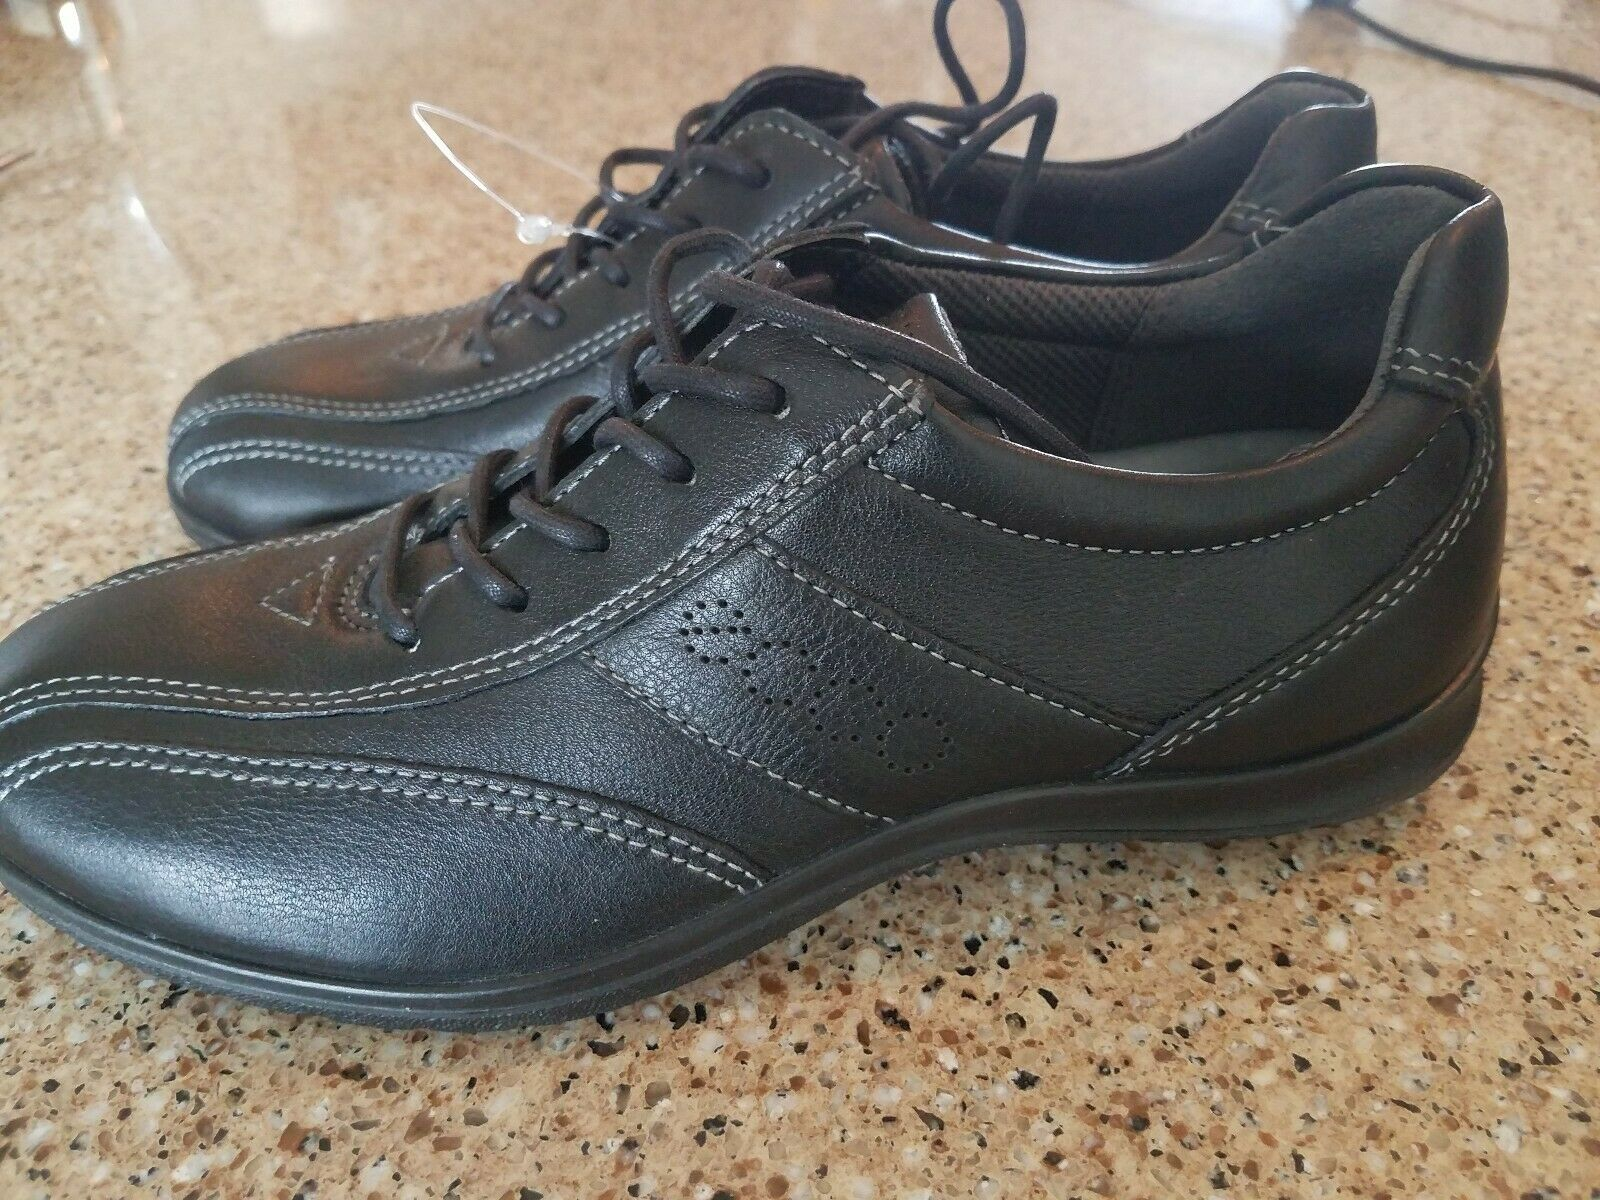 NWOB Ecco black Lace Up Sport Sneaker oxford Leather shoes shoes shoes womens Size 35 US 5 d8af27